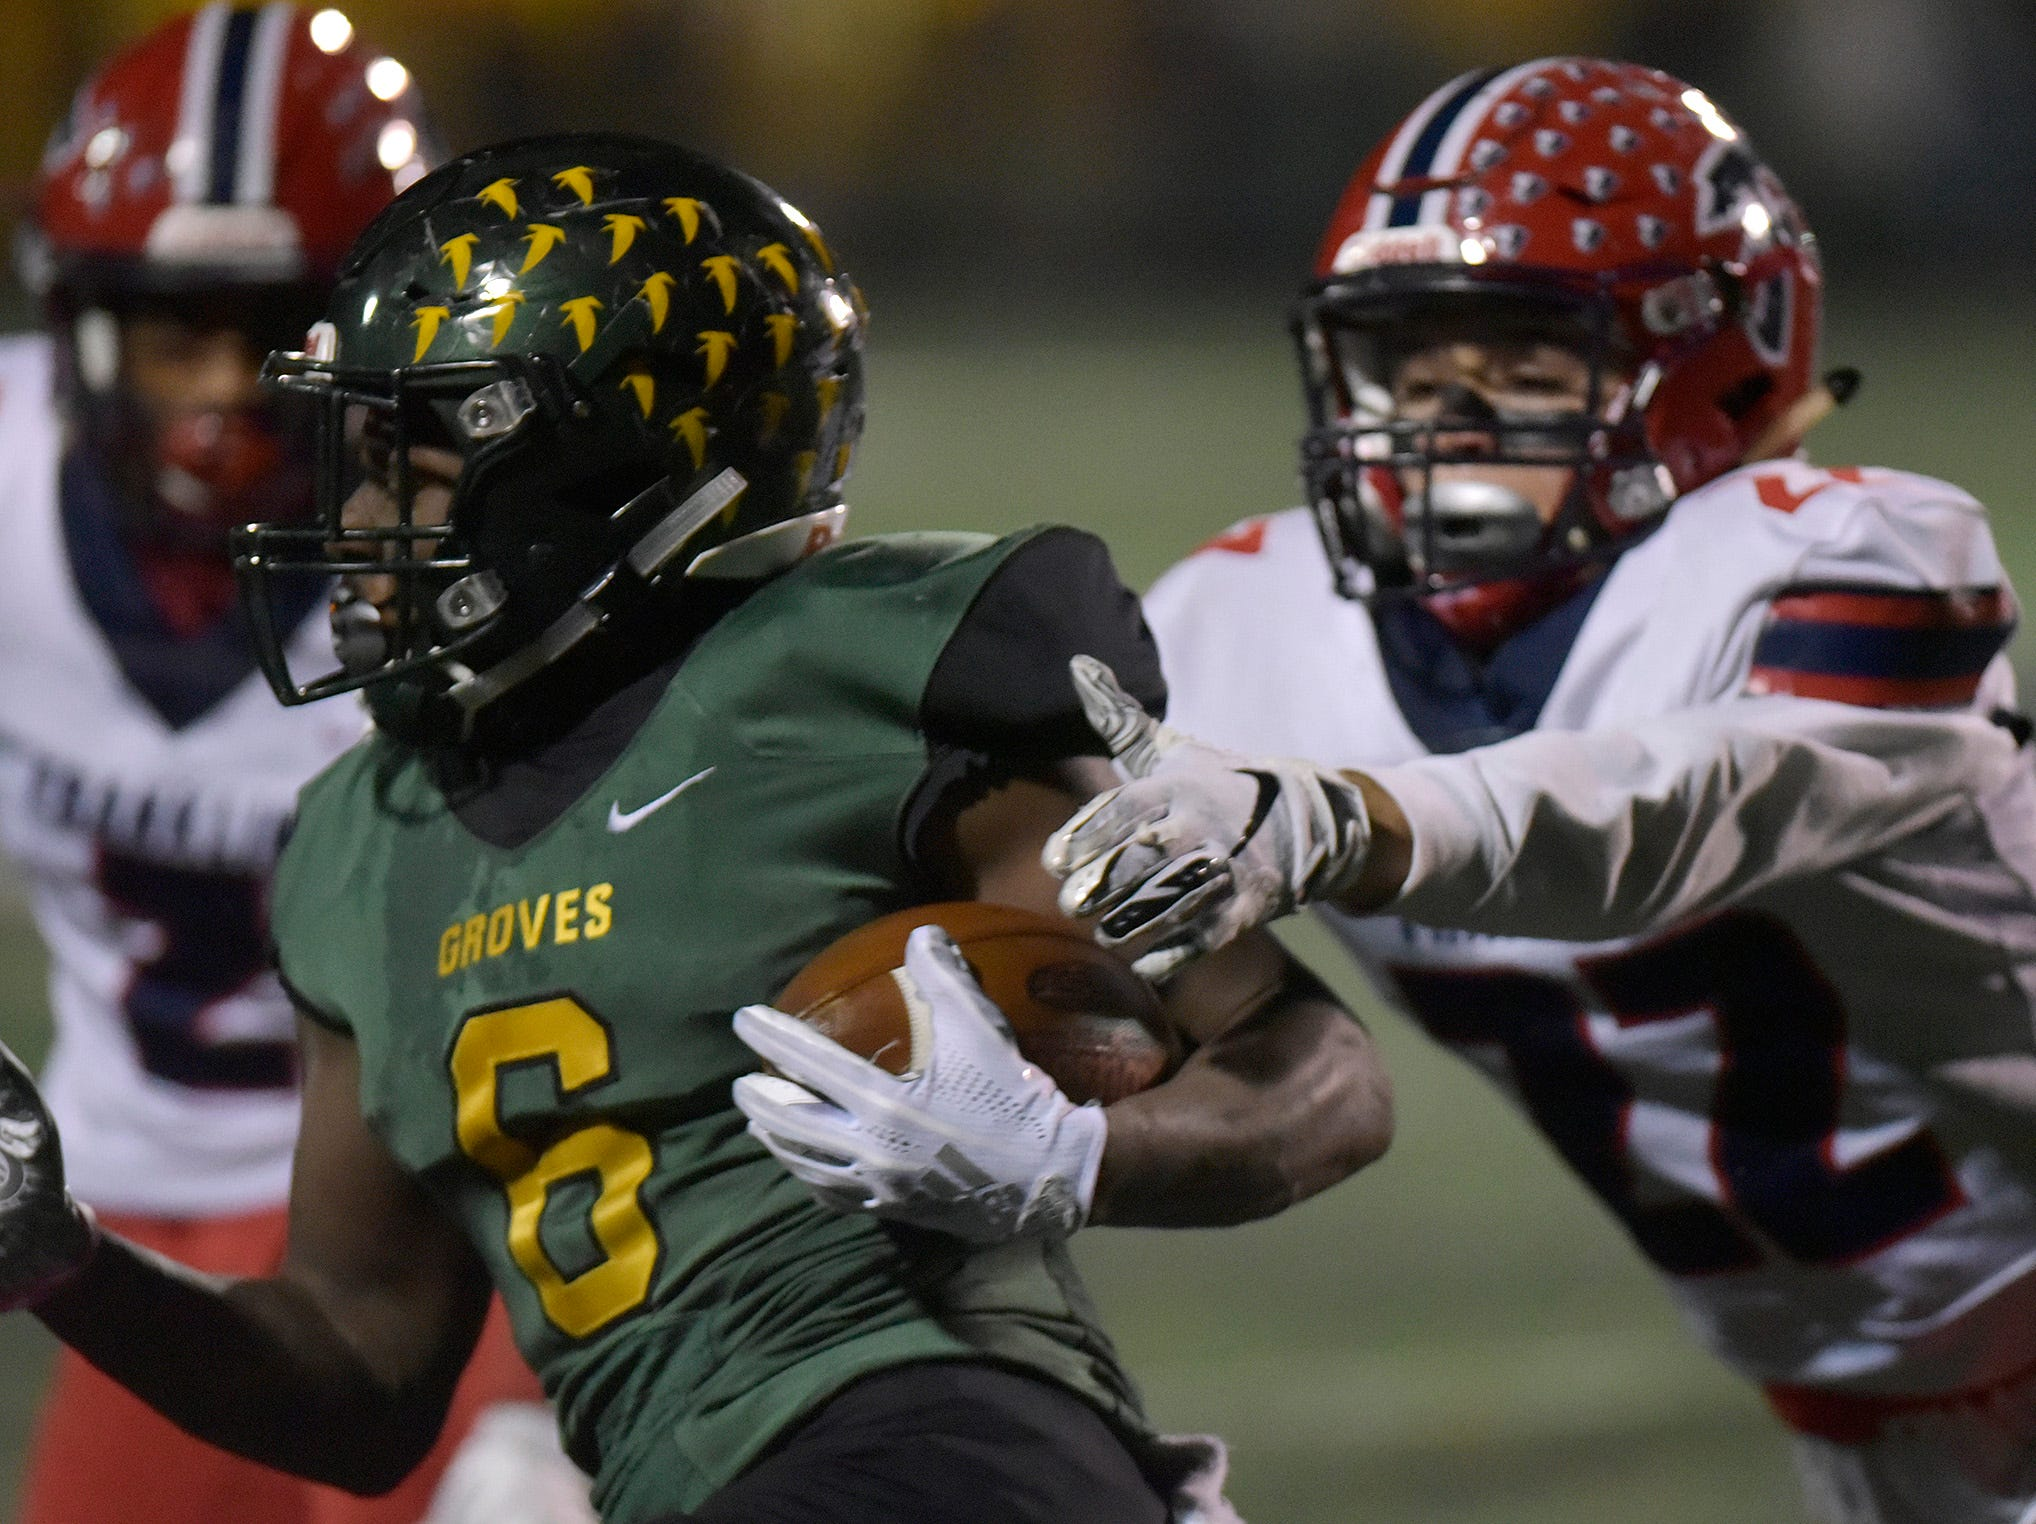 Birmingham Groves RB/FS Damonte McCurdy (6) gets past Franklin DB/SL James Carpenter (22).